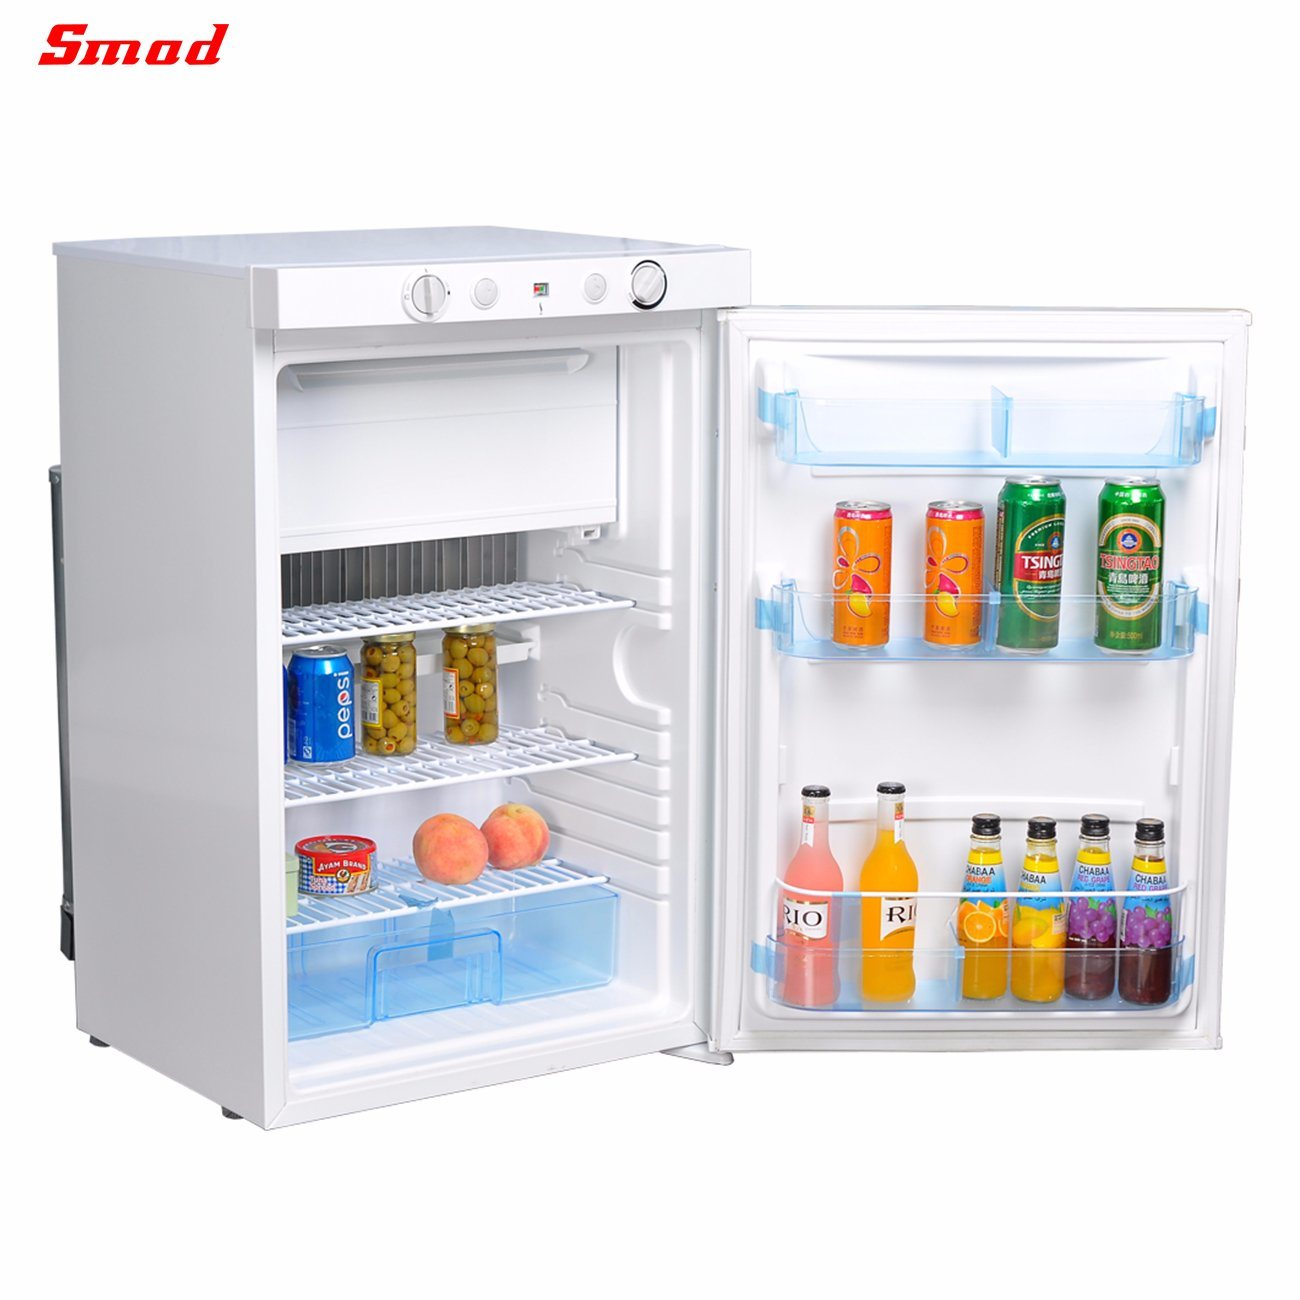 [Hot Item] Xcd-100 3 Way Gas and Electric Refrigerators Propane  Refrigerator Freezer